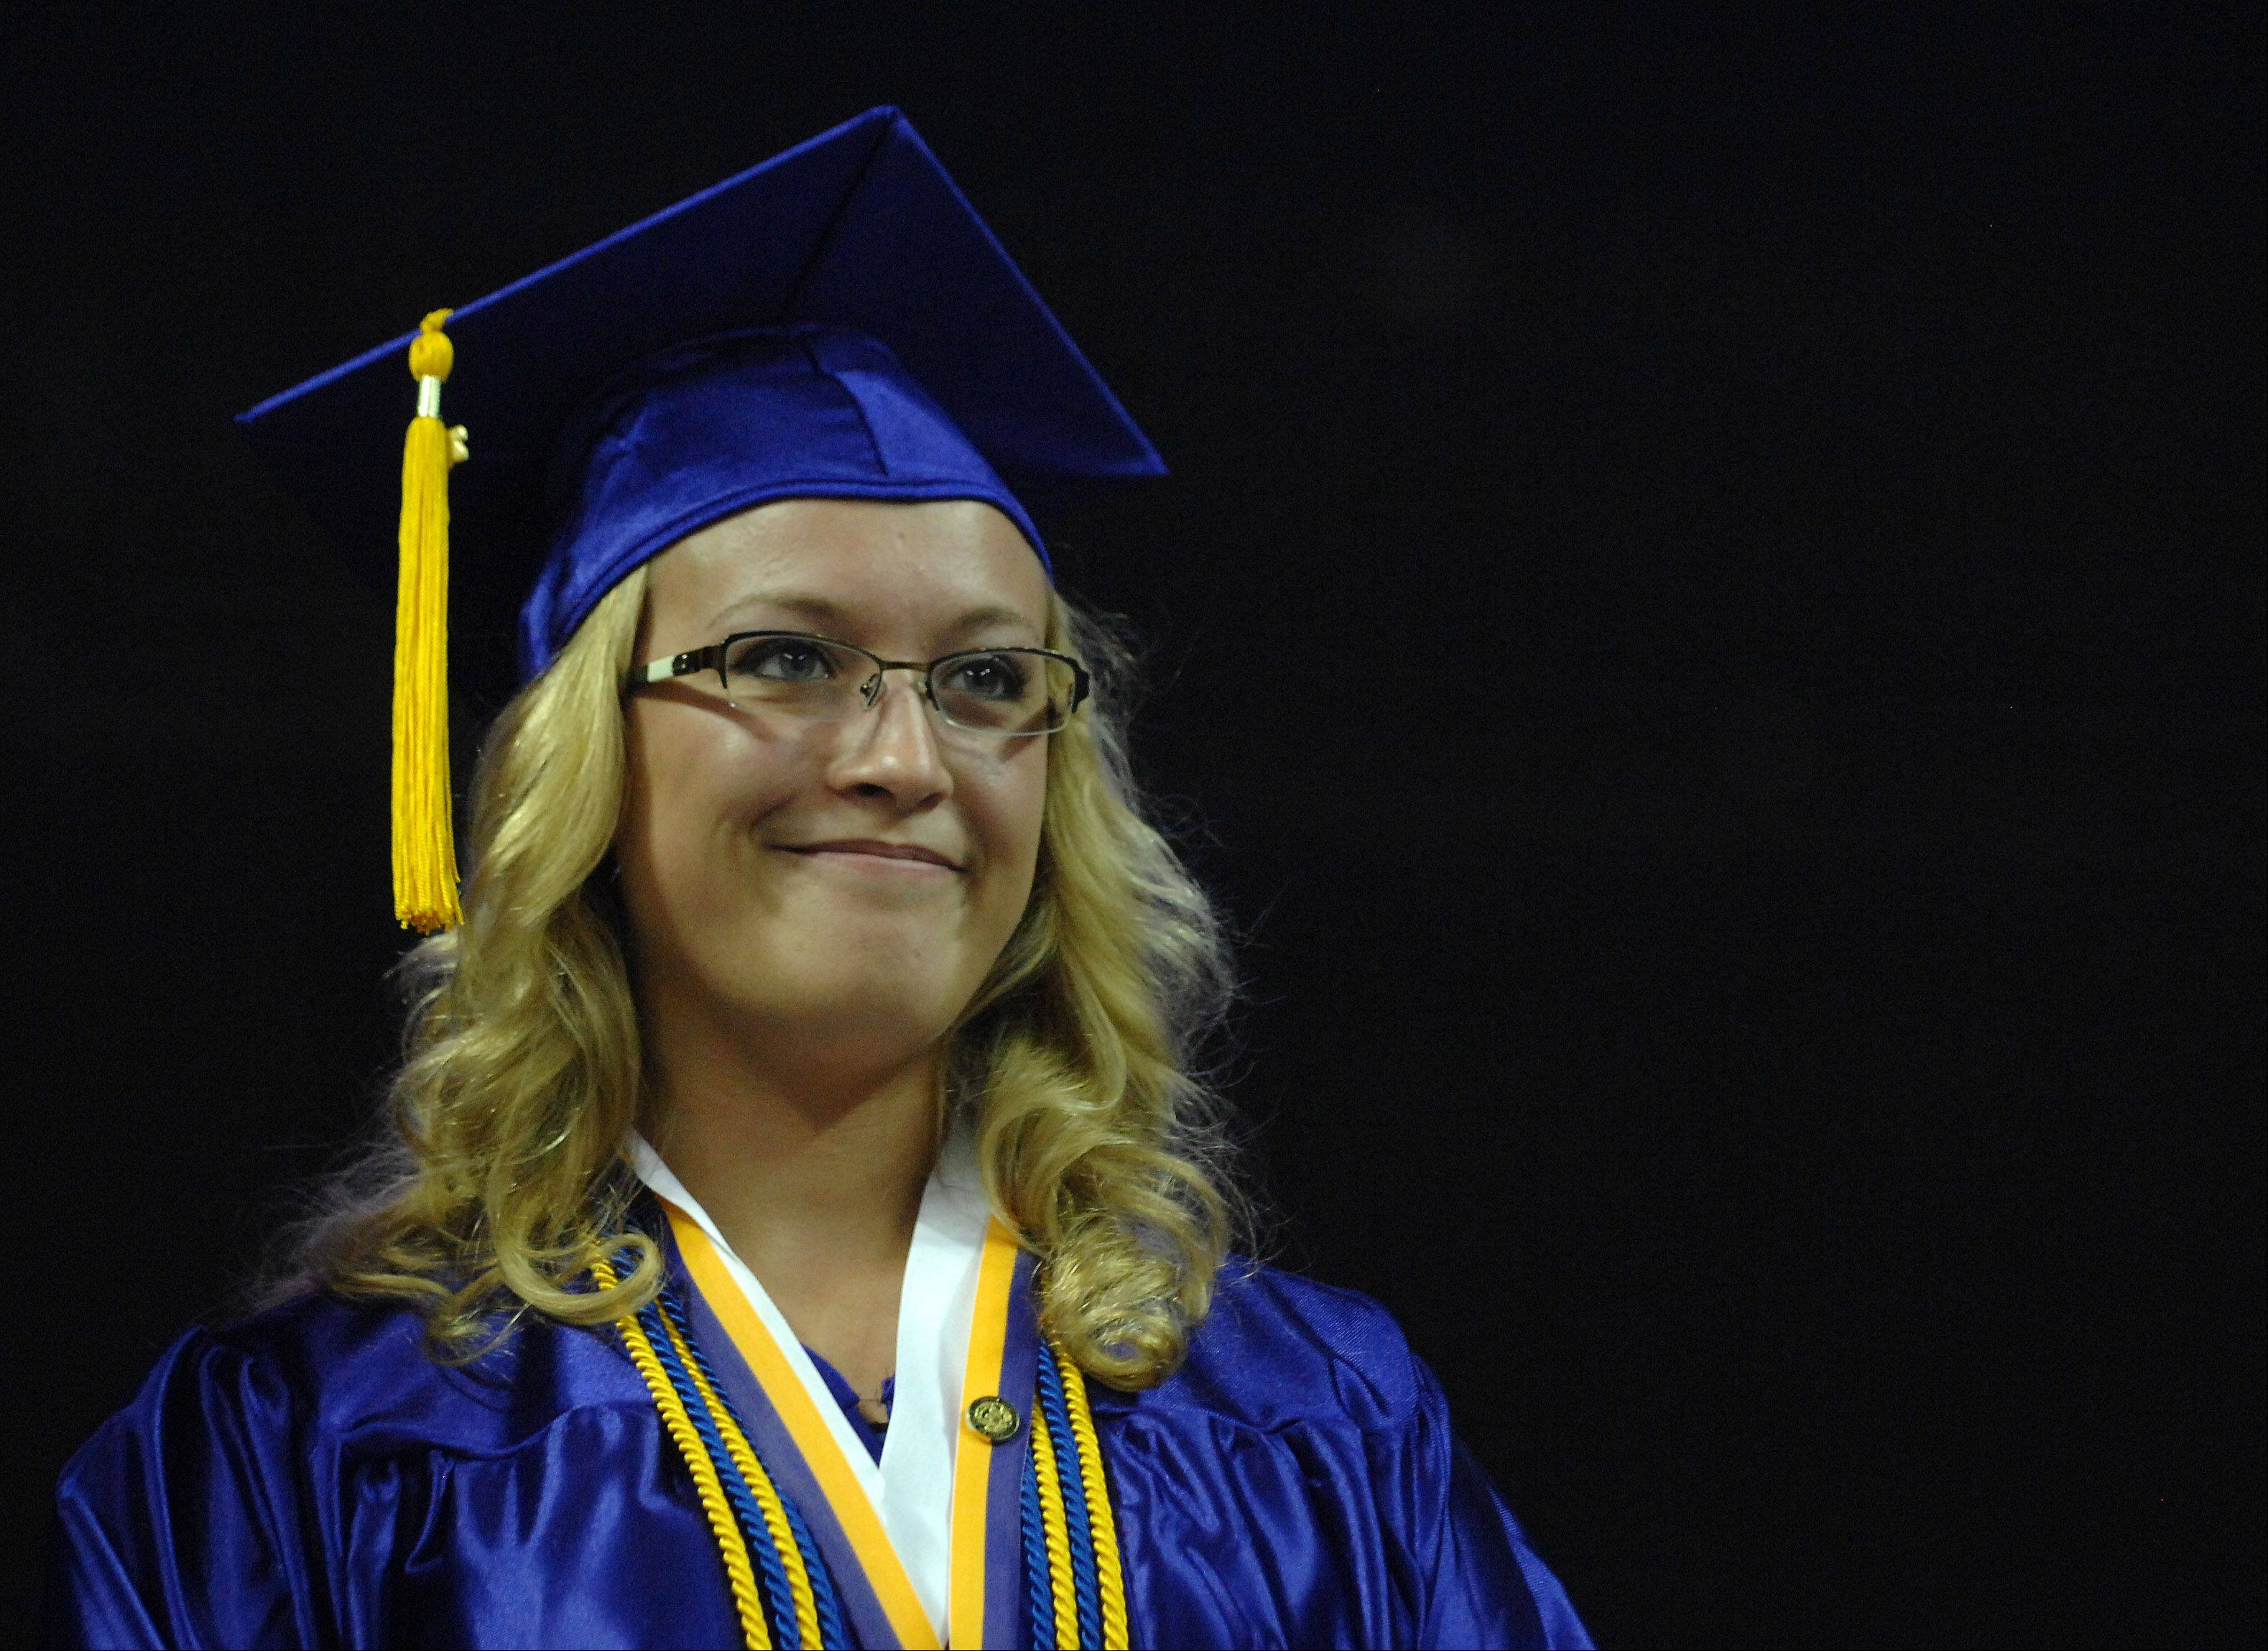 $PHOTOCREDIT_ON$during Hampshire High School's graduation ceremony Saturday at the Sears Centre in Hoffman Estates. Rick West/rwest@dailyherald.com$PHOTOCREDIT_OFF$Images from the Hampshire High School graduation ceremony Saturday, May 18, 2013 at the Sears Centre in Hoffman Estates.